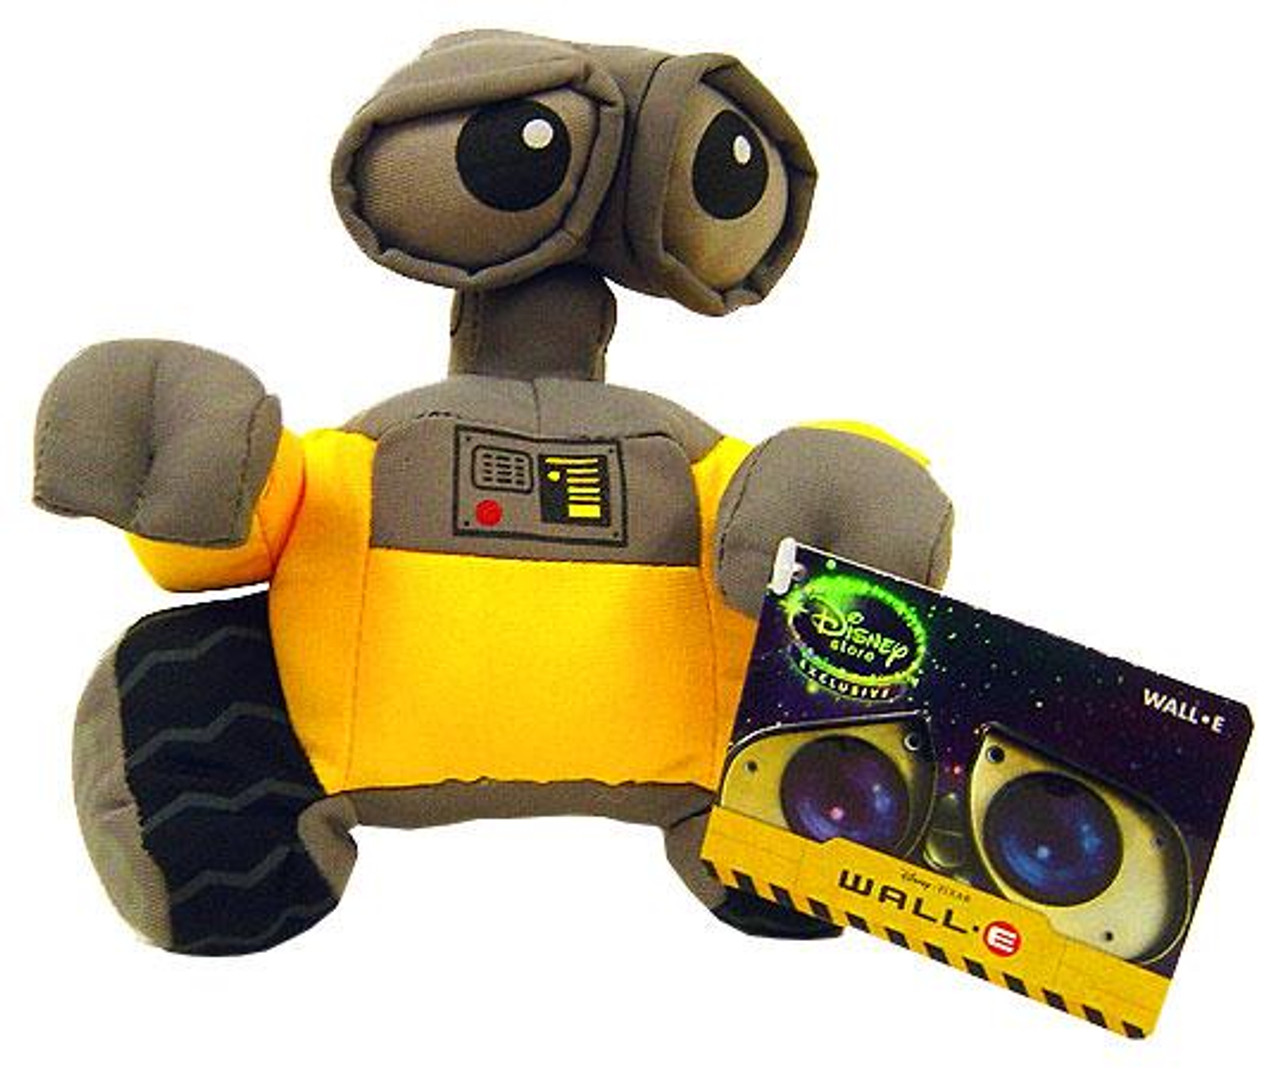 Disney / Pixar Wall-e Exclusive 5-Inch Plush [Disney]